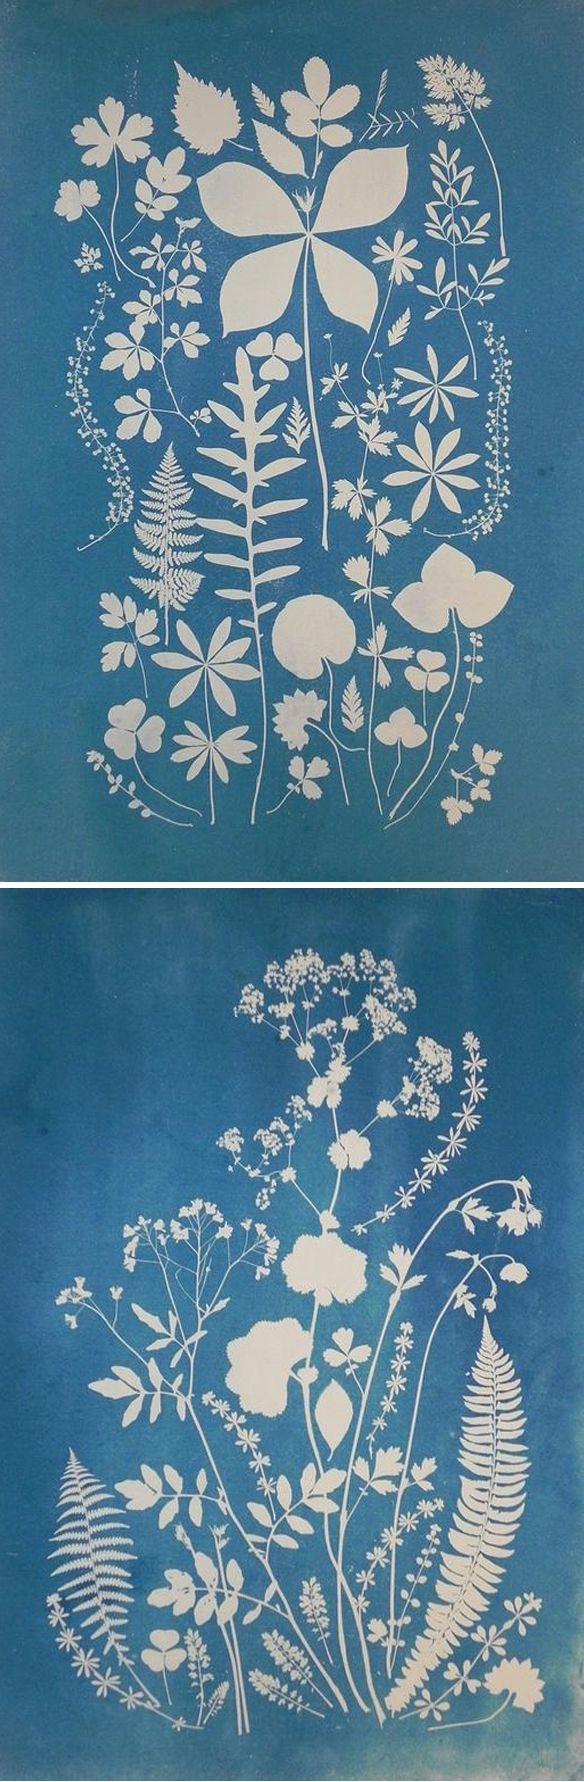 cyanotypes by anna maria bellmann